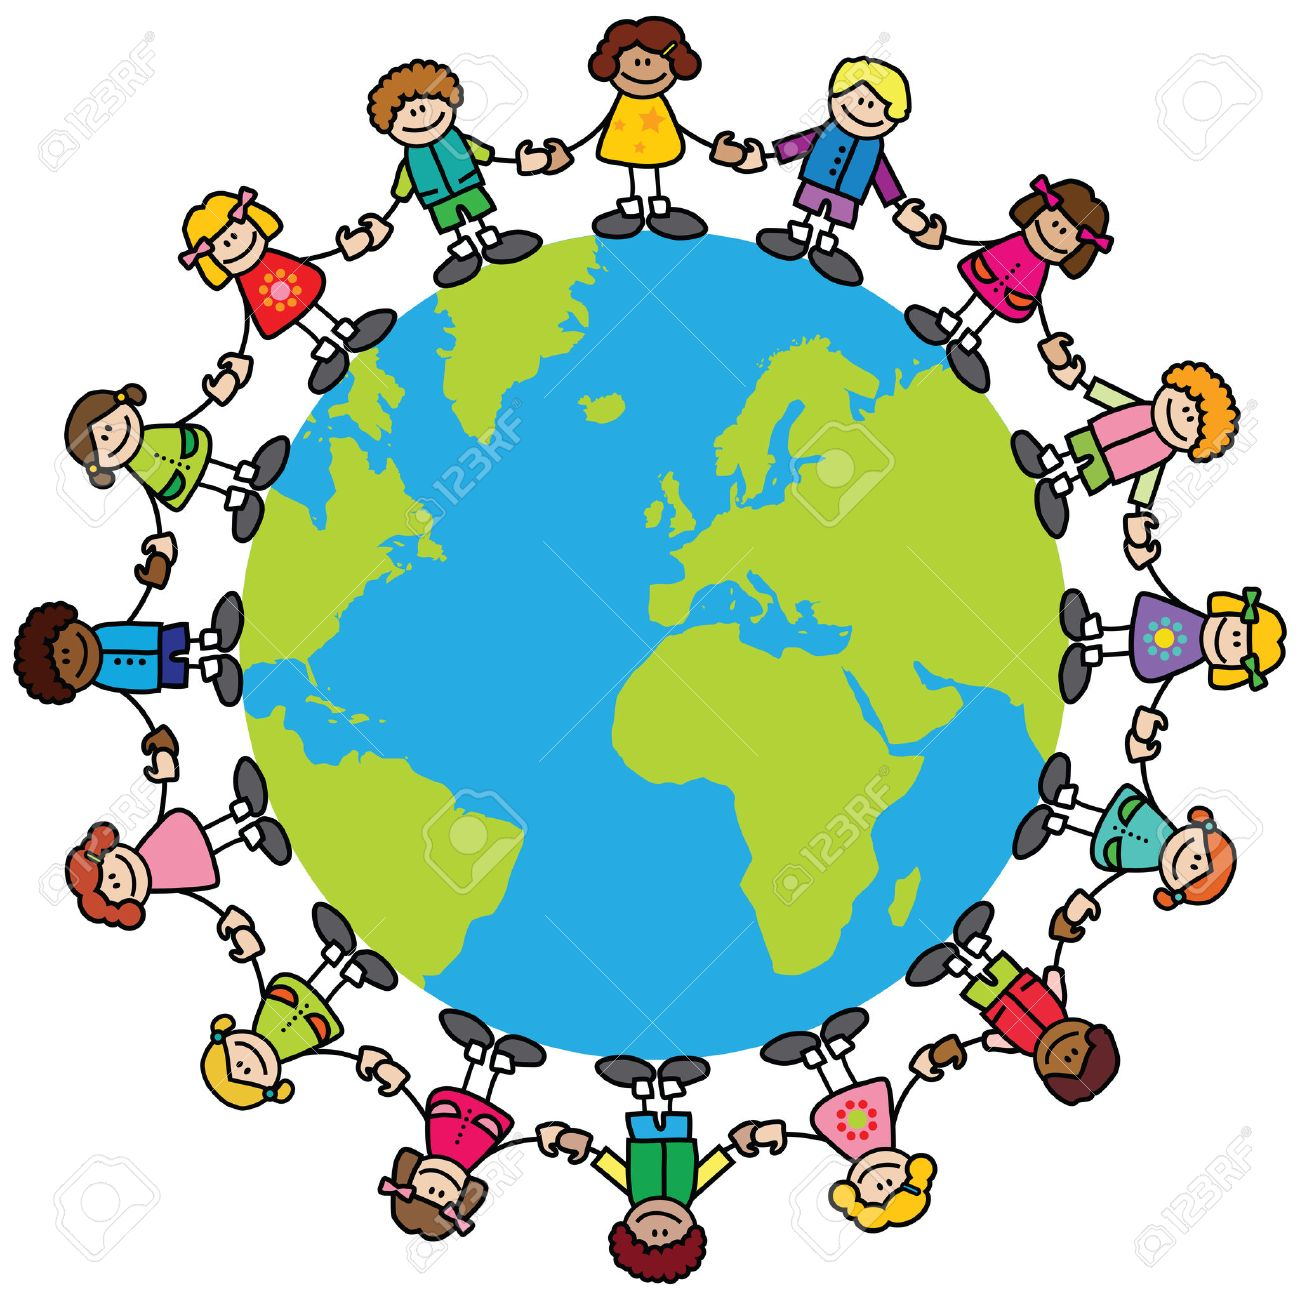 happy children variety of skintones holding hands around the rh 123rf com Clip Art Black and White around the World Plane Clip Art around the World